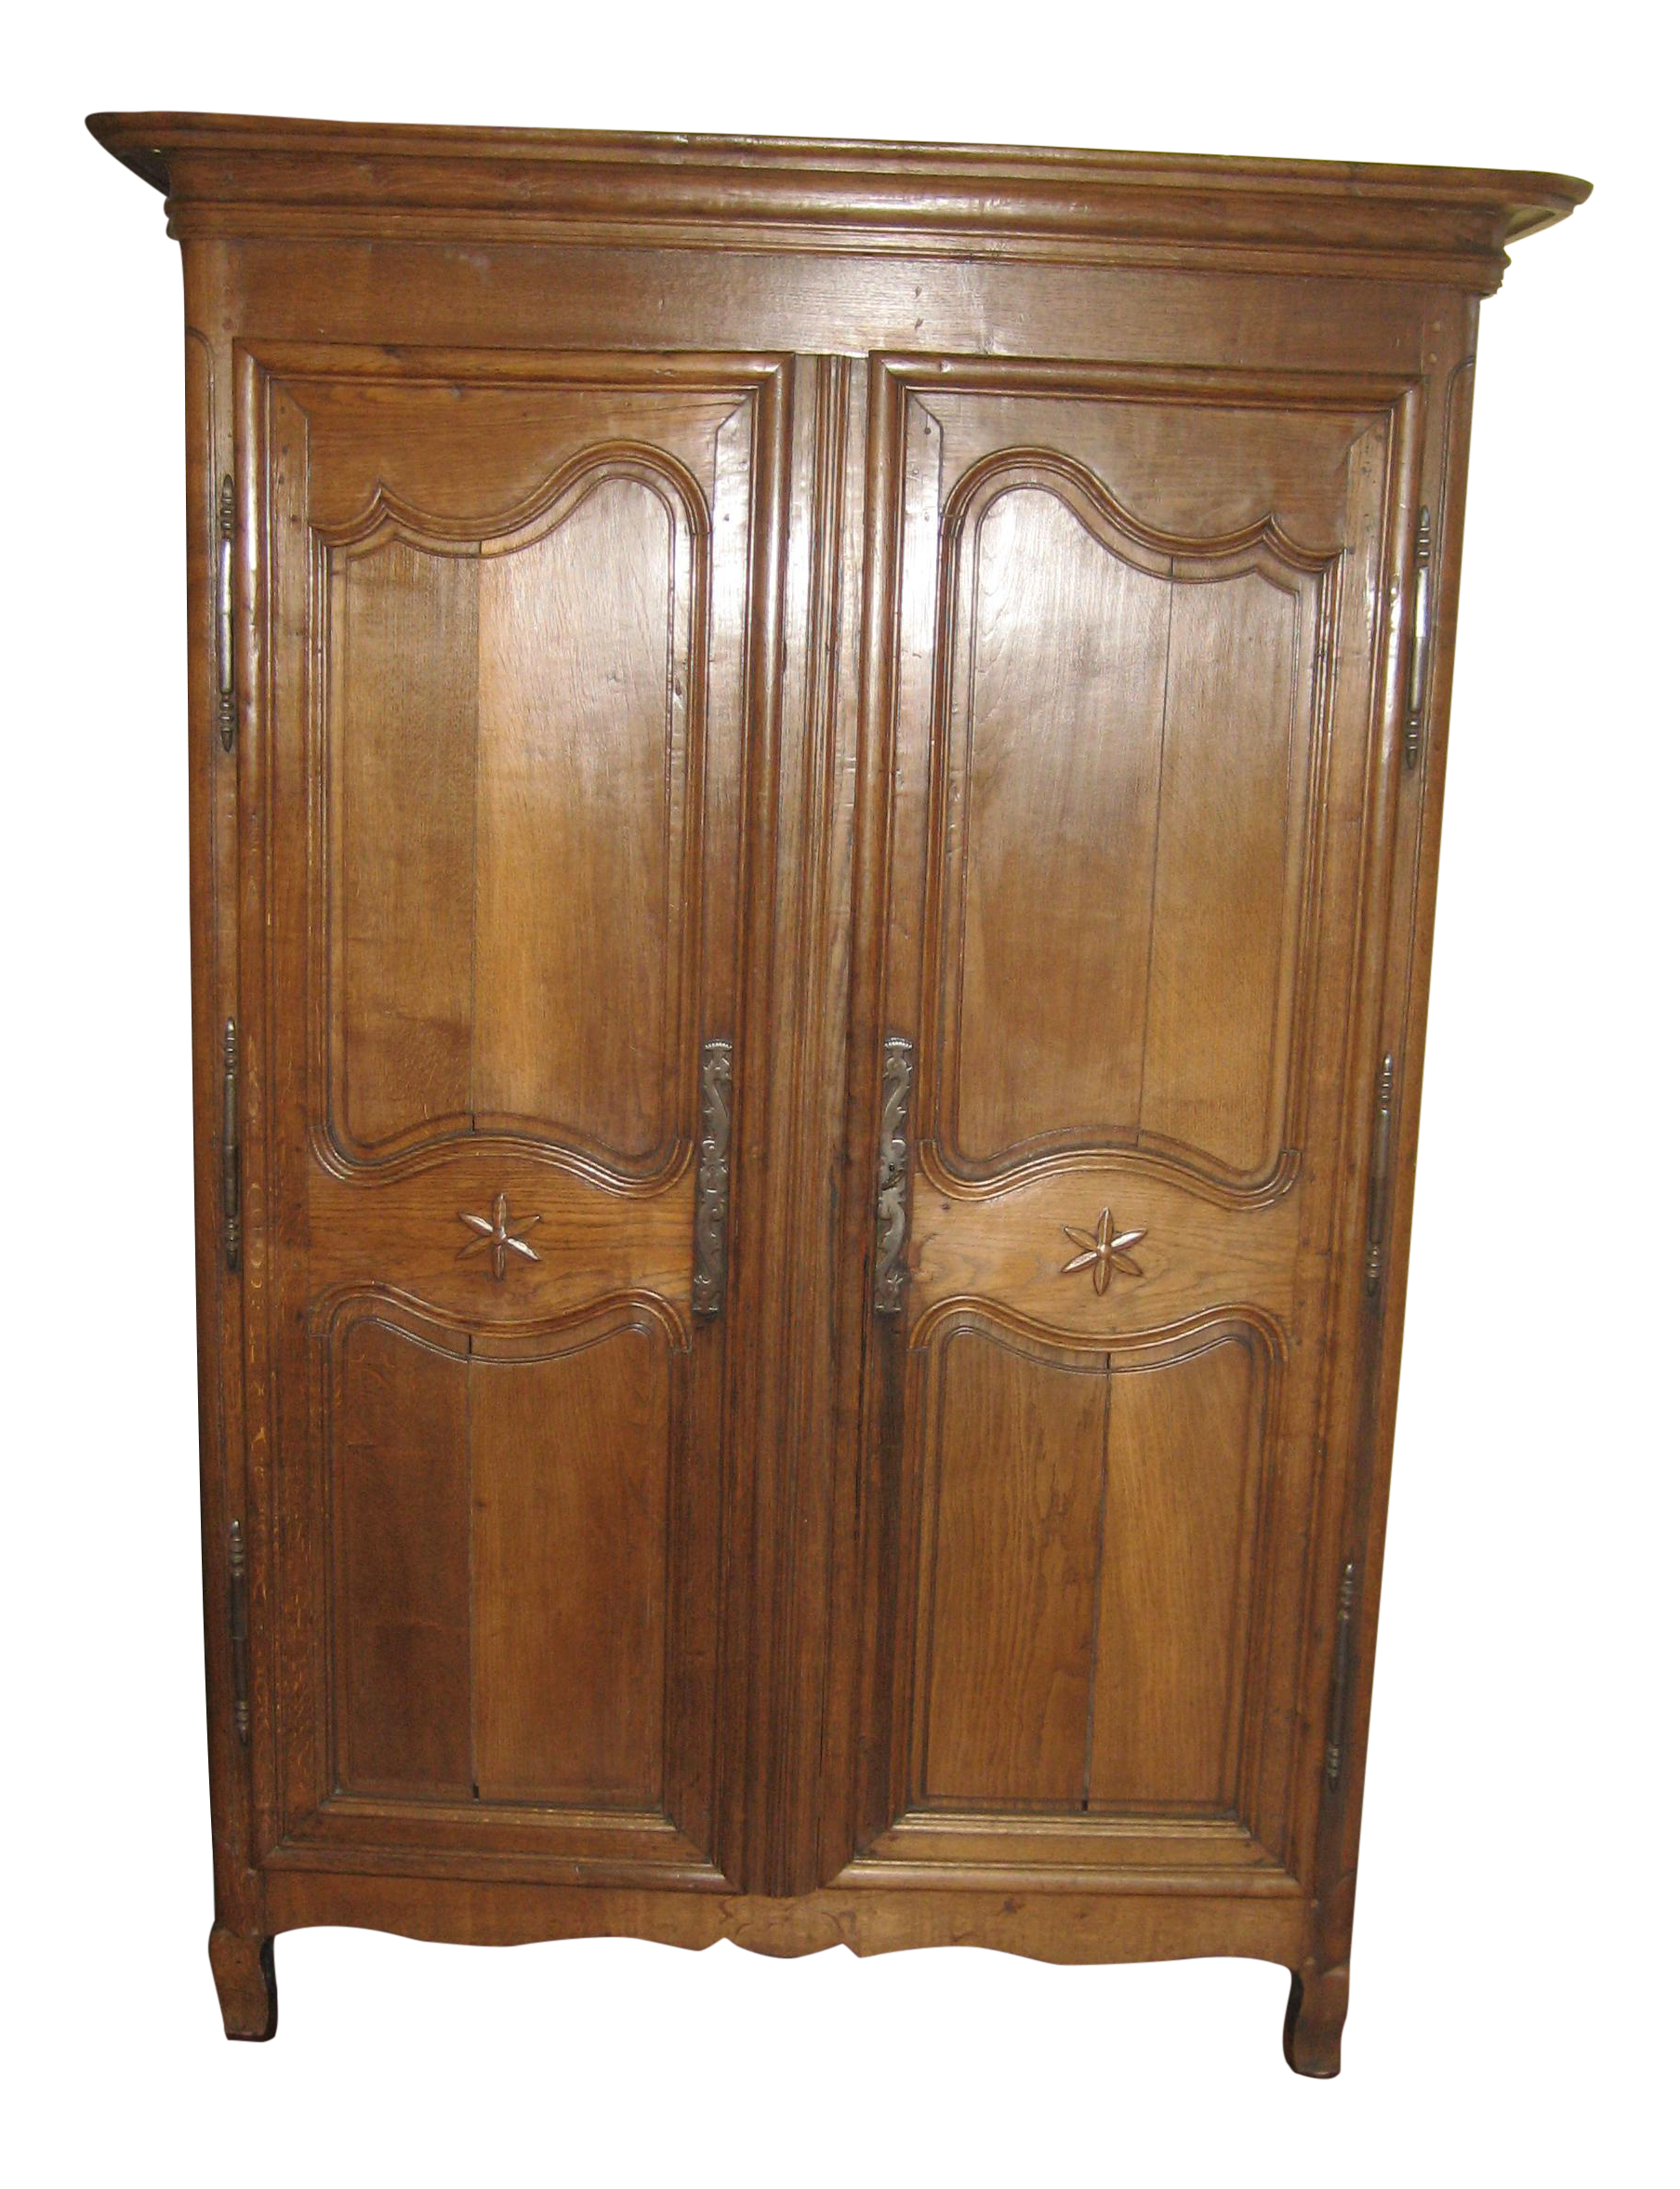 vintage used armoires wardrobes for sale chairish rh chairish com antique display cabinets for sale cape town antique dining chairs for sale cape town